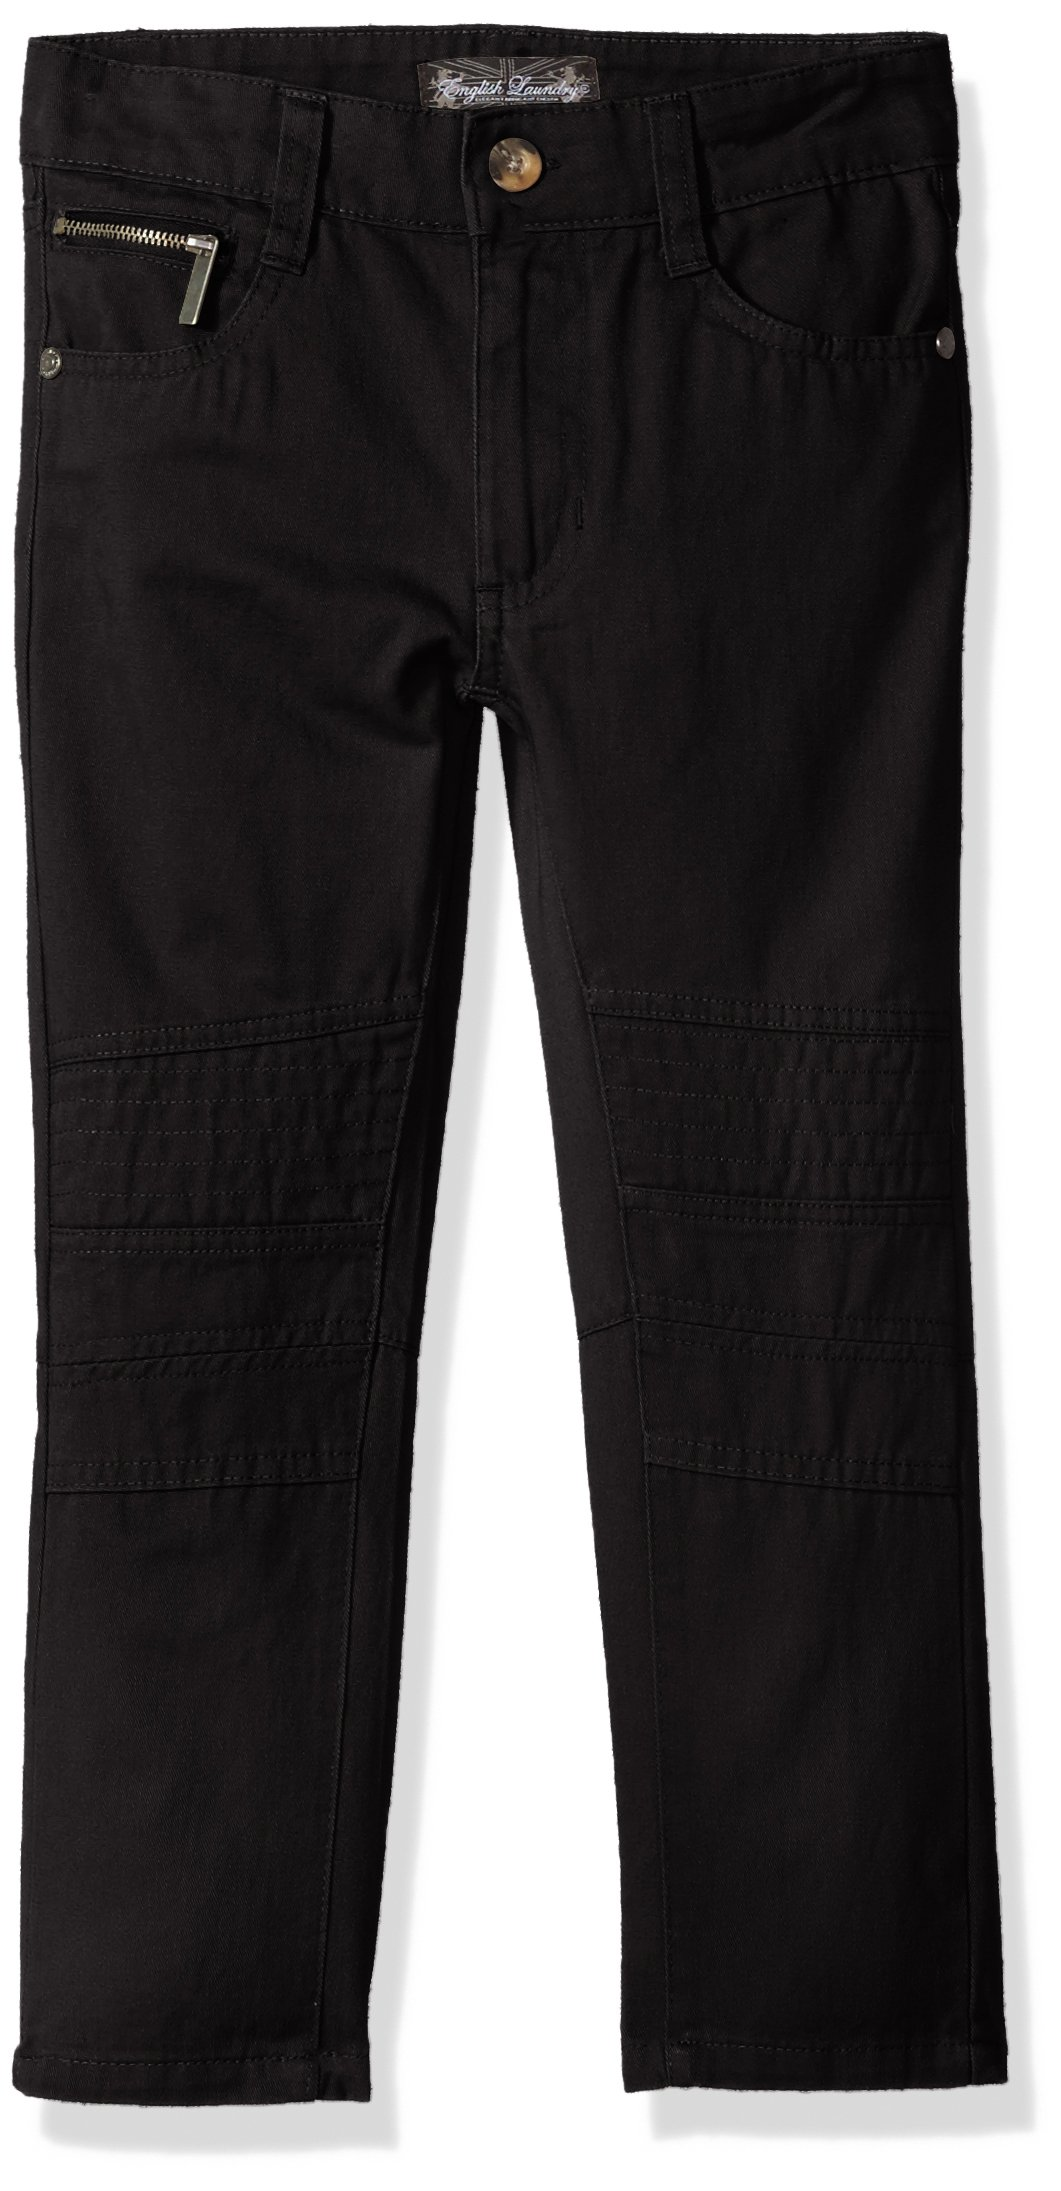 English Laundry Big Boys' Twill Pant (More Styles Available), Black, 12